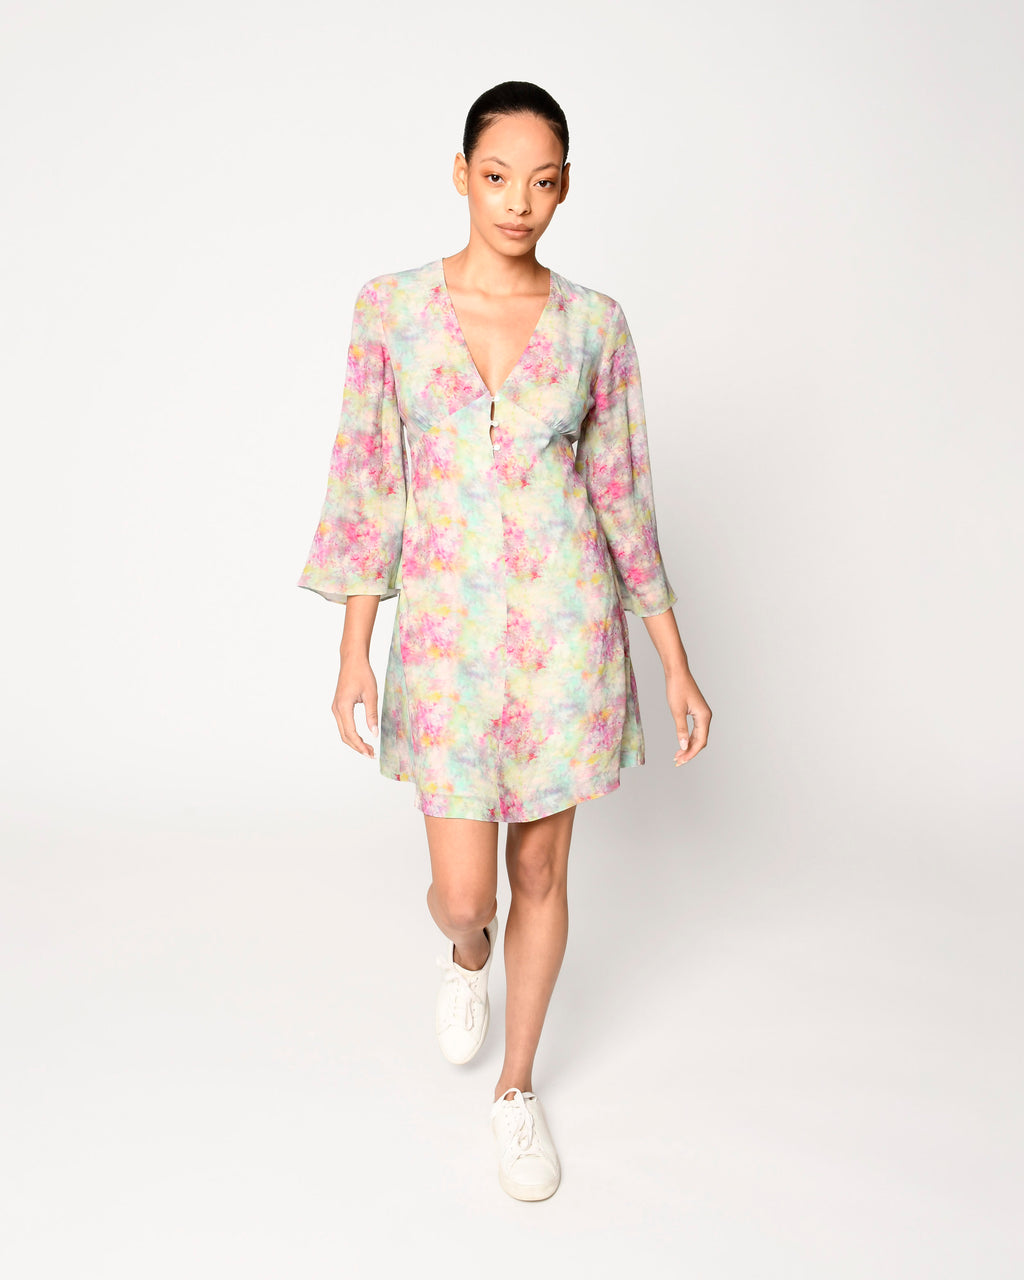 CD18747 - OPAL DYE BELL SLEEVE MINI DRESS - dresses - short - This mini dress is designed in an array of pastels in a crushed tie dye. Featuring breezy bell sleeves and subtle lace detailing. Add 1 line break Stylist Tip: Pair with white sandals.